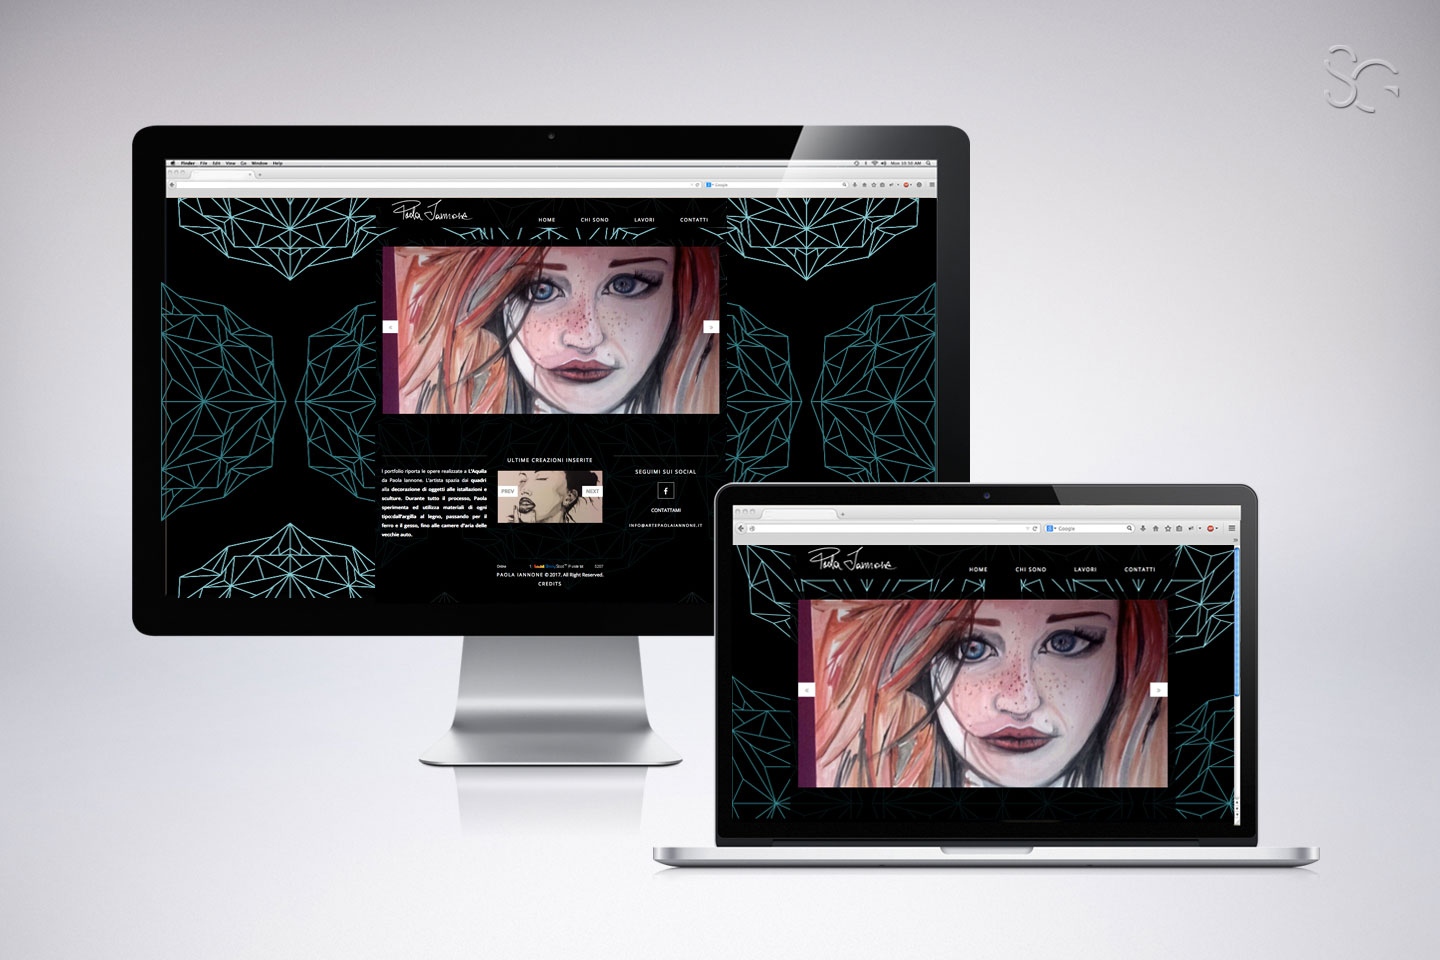 restyling-sito-web-paola-iannone-design-stefano-giancola